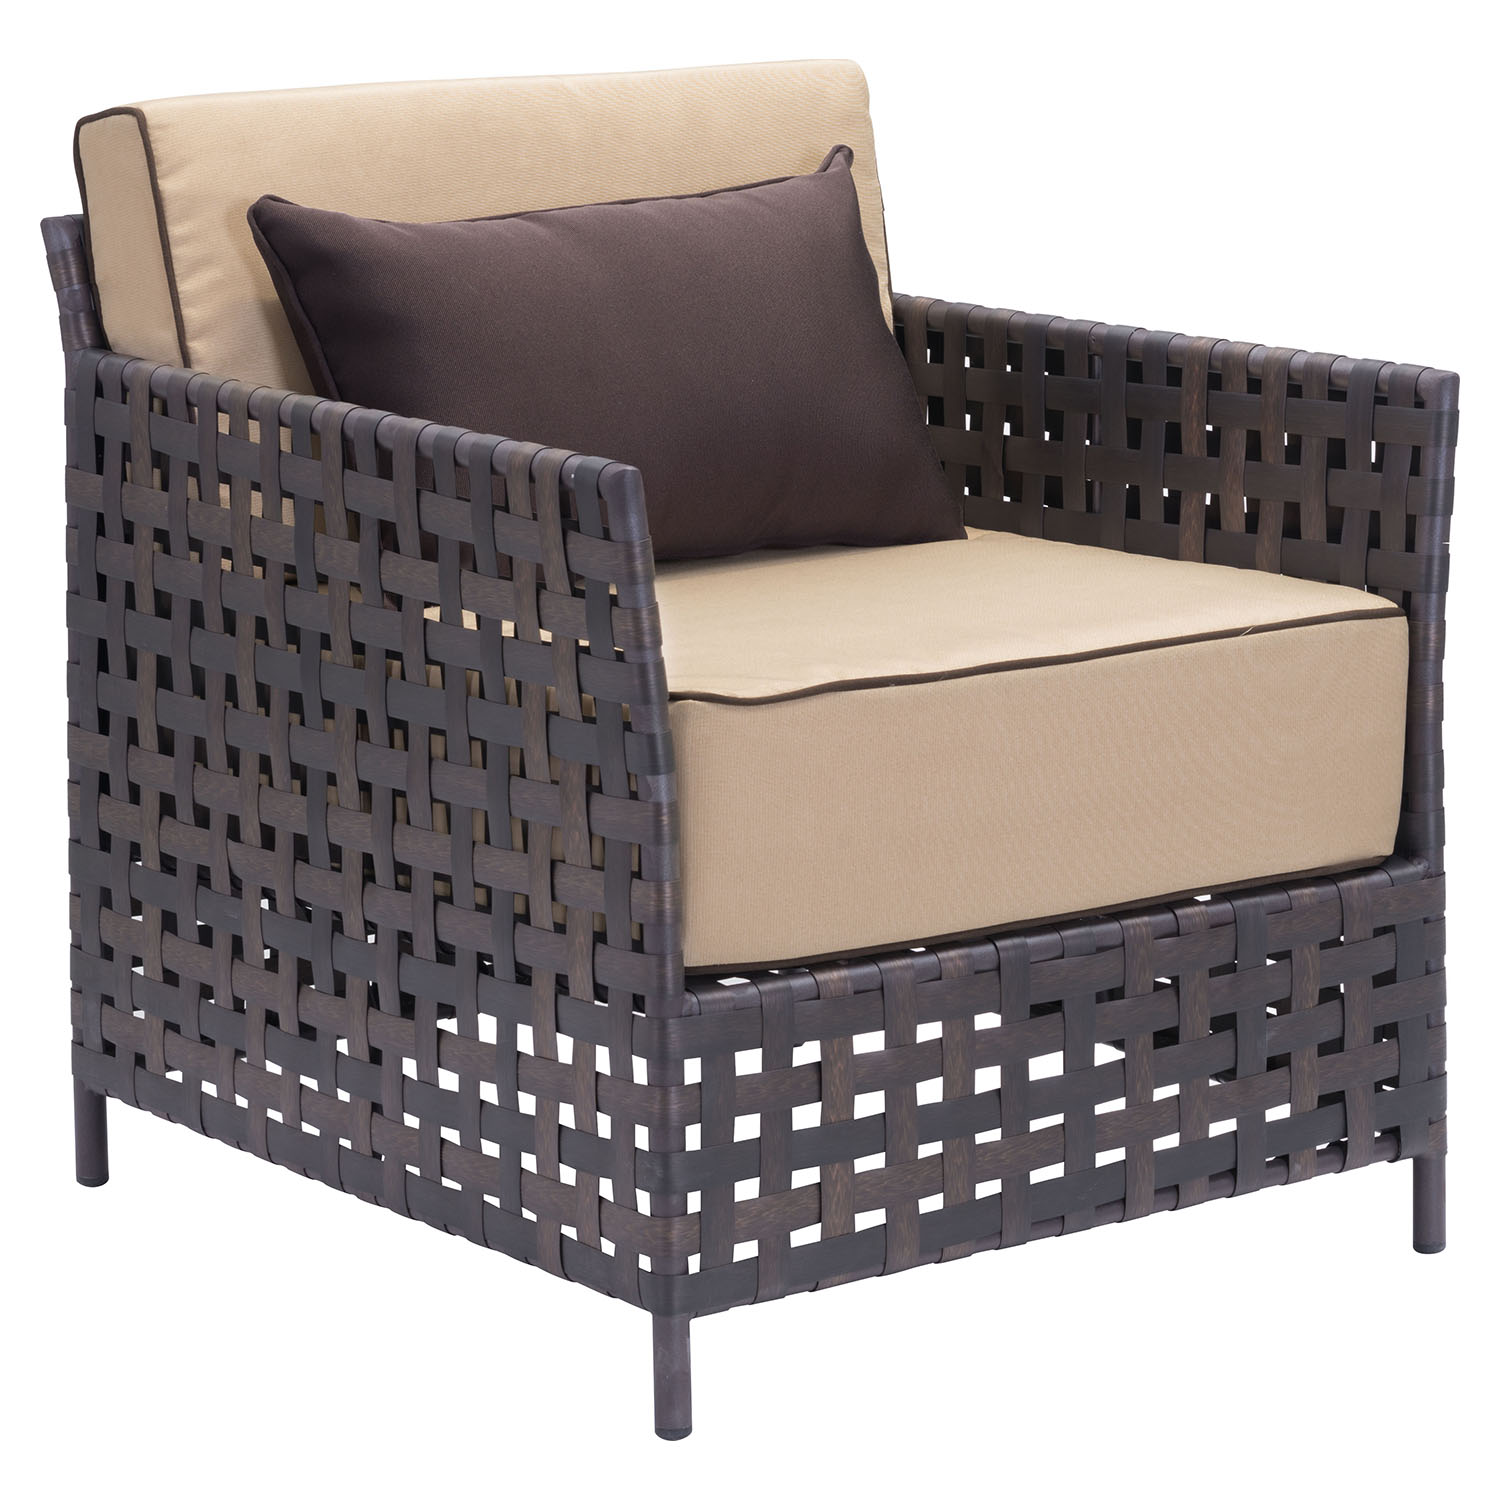 Pinery Arm Chair - Brown and Beige - ZM-703637